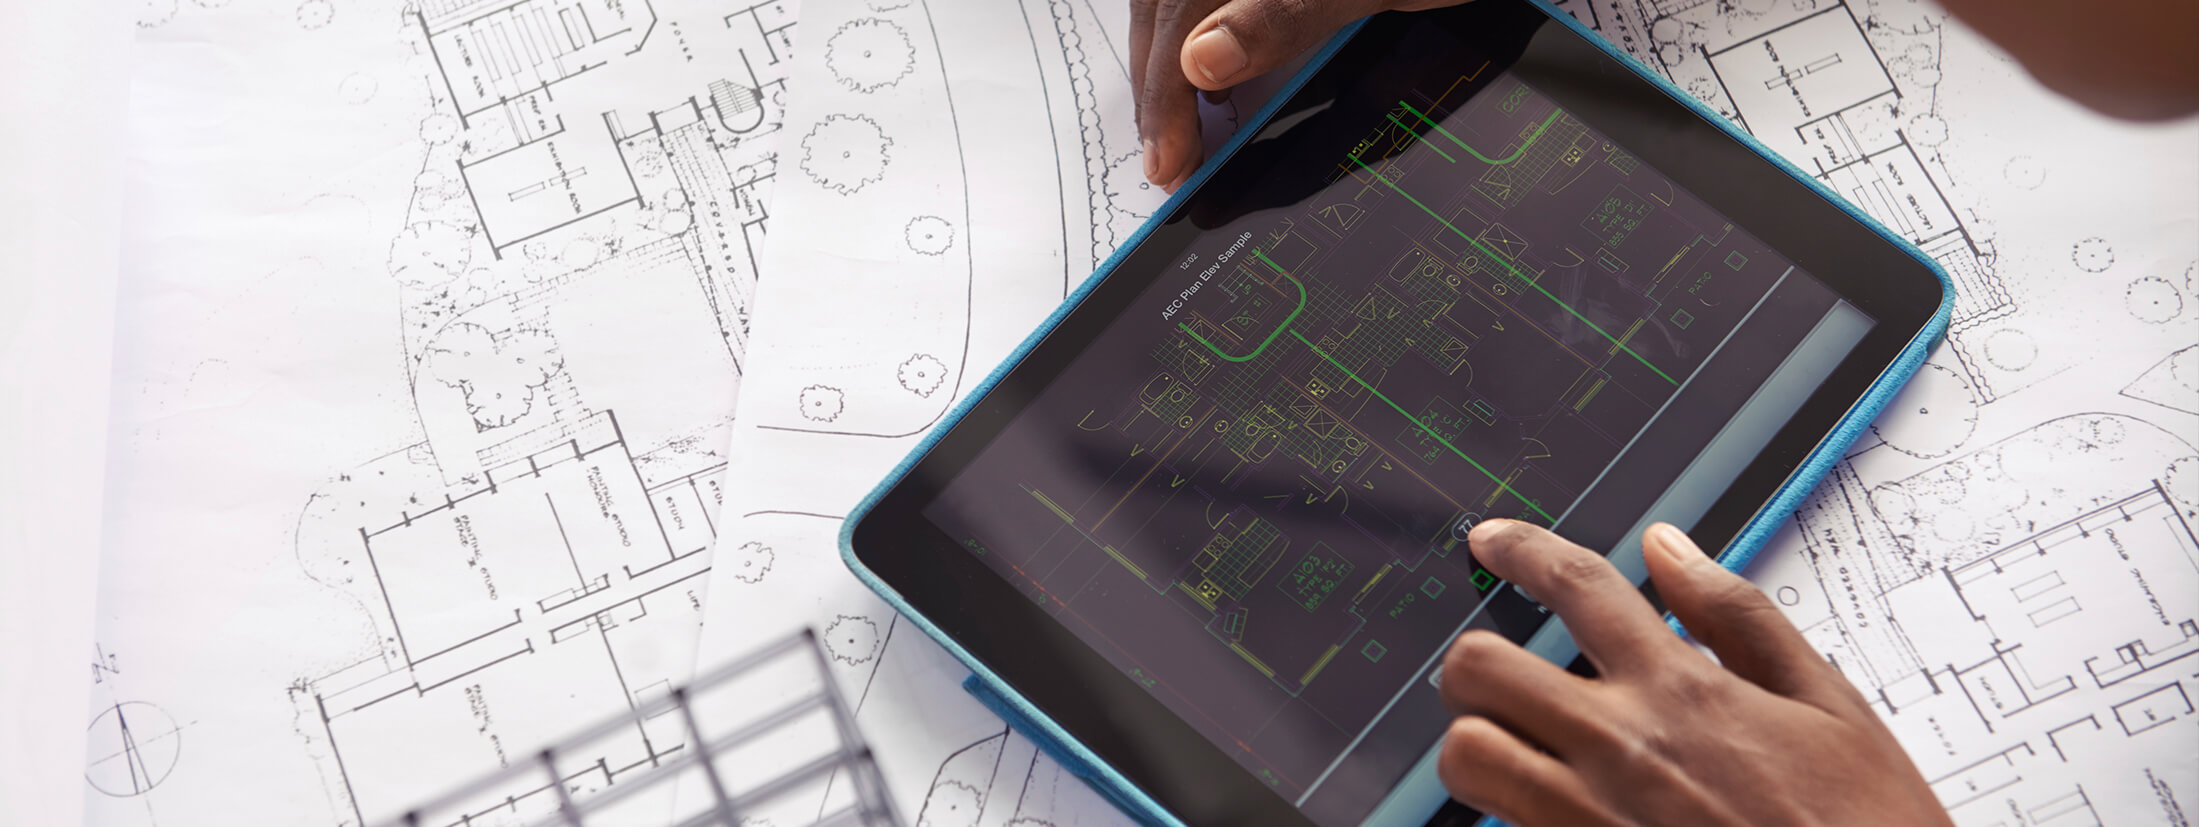 Technology is crucial to the architectural industry.